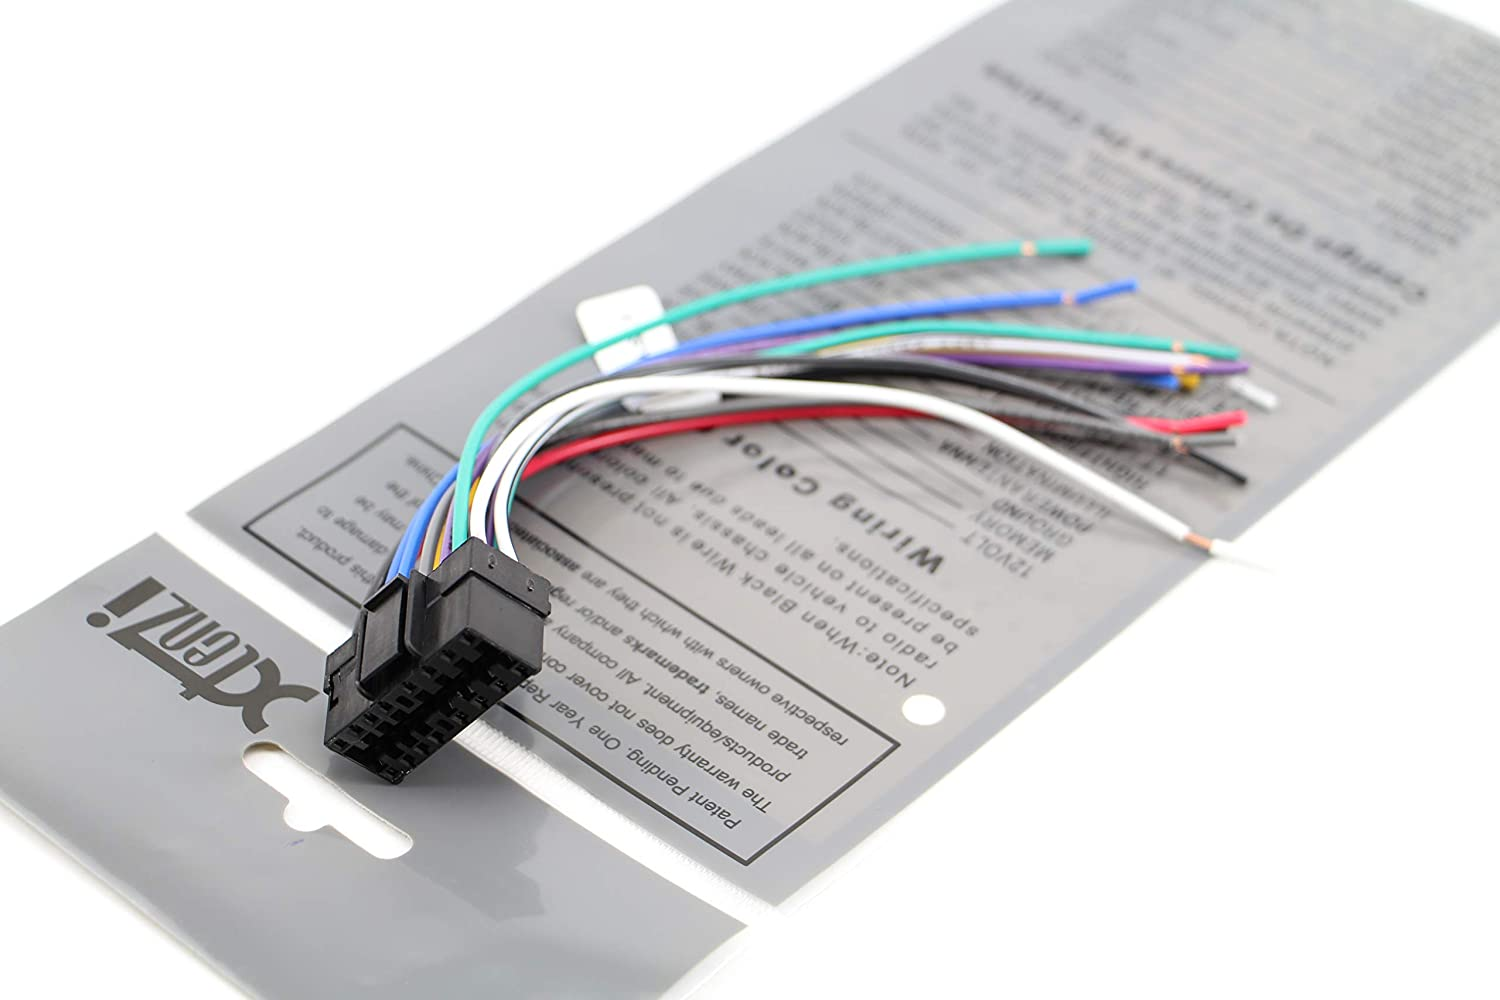 Sony 16 Pin Wiring Harness Diagram Also Sony Cdx Gt500 Wiring Diagram